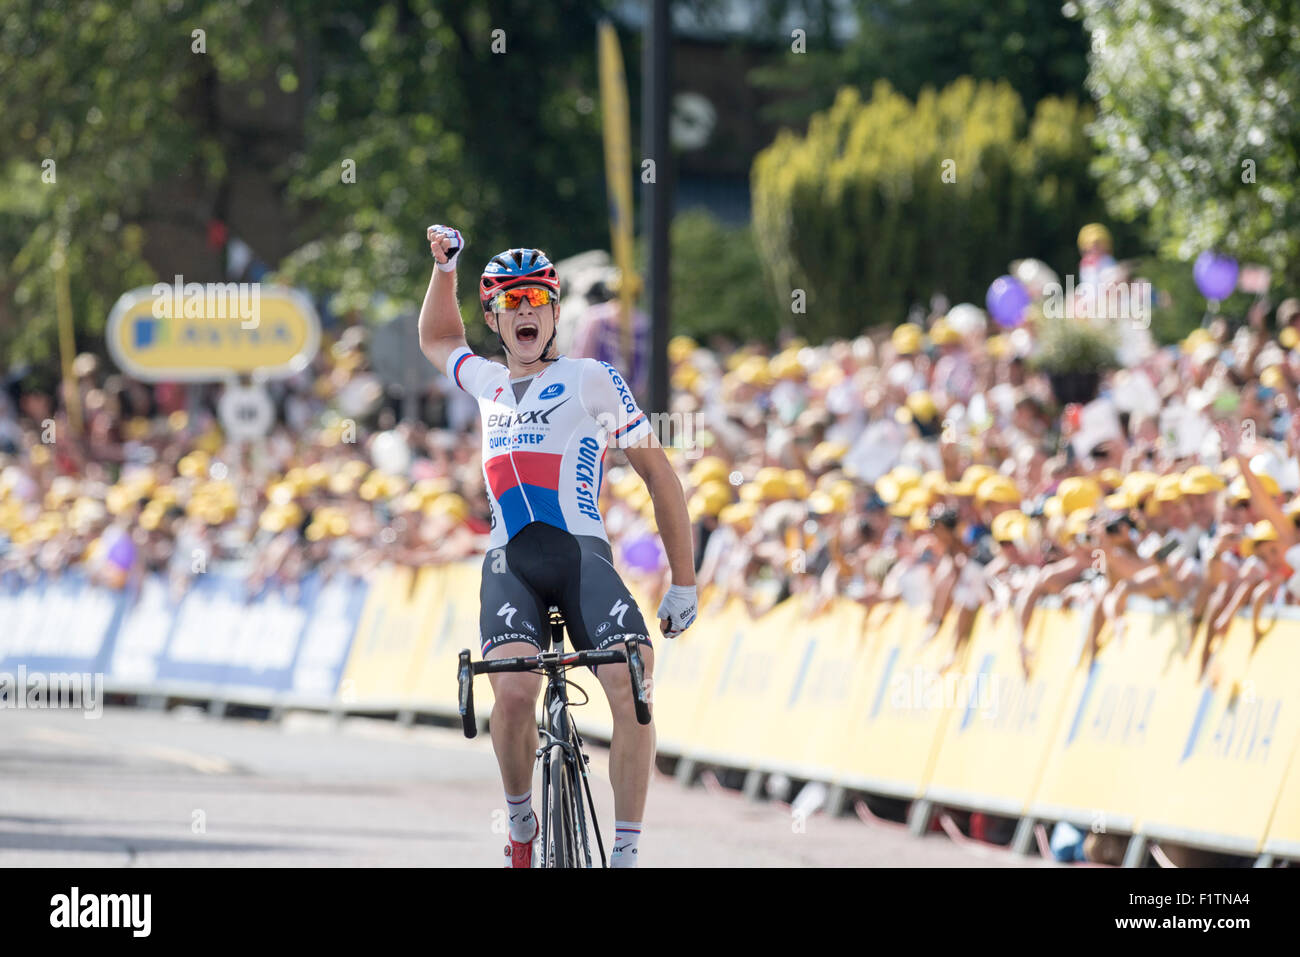 Czech Cycling Tour Stock Photos   Czech Cycling Tour Stock Images ... 8e13a84b4